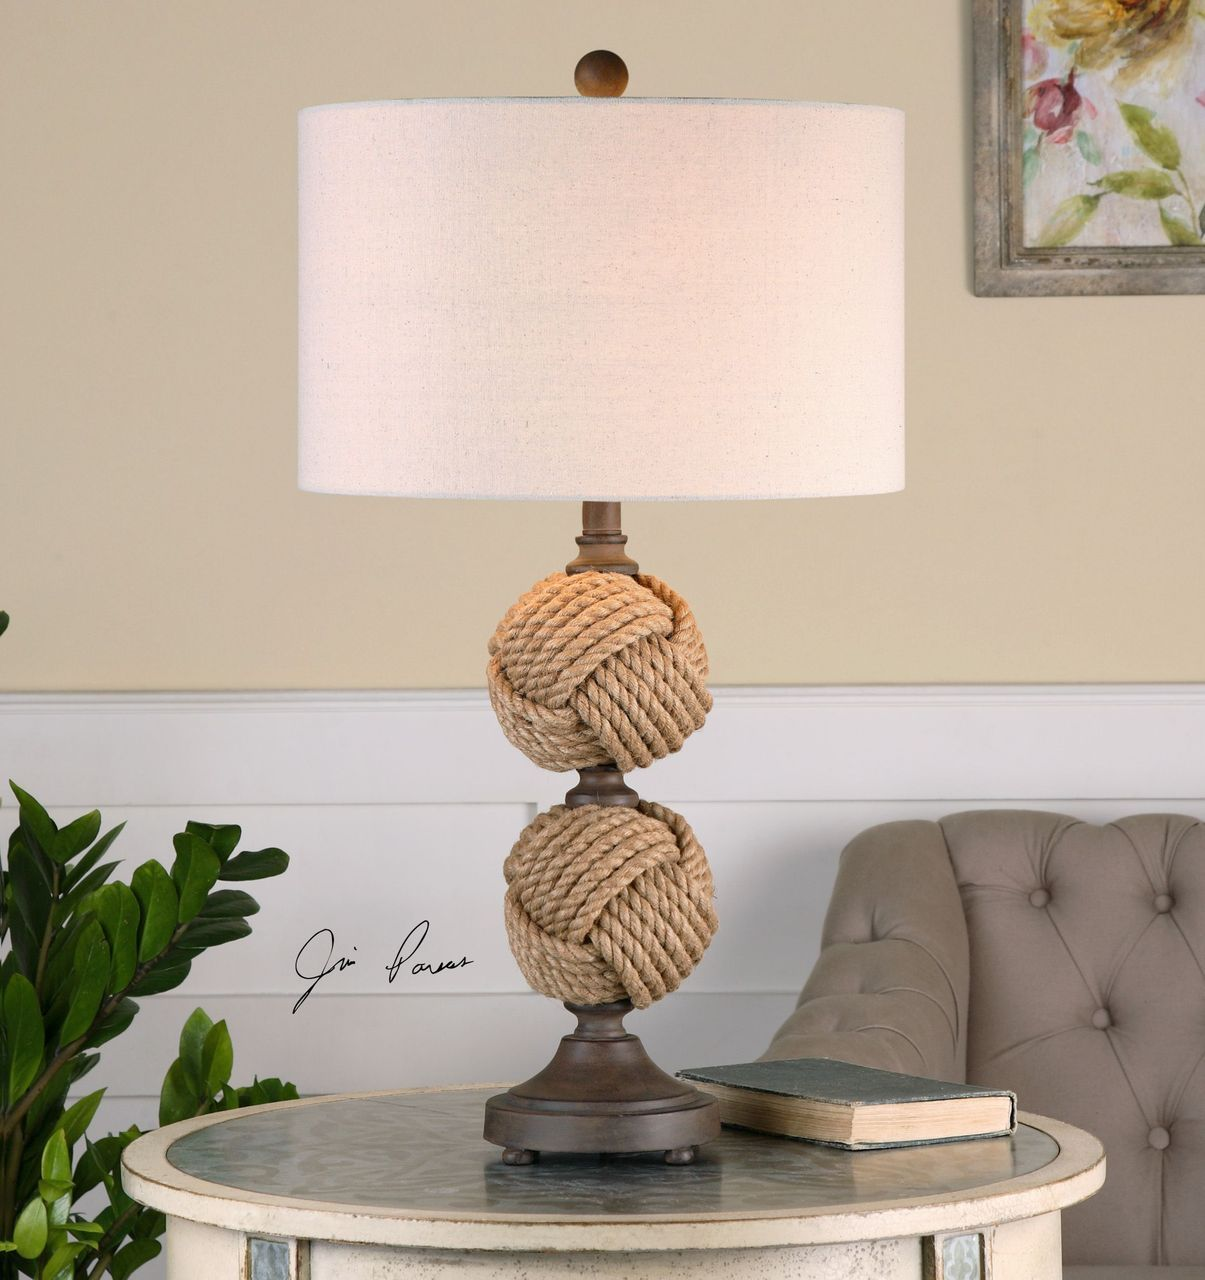 Master higgins rope spheres table lamp beach house decorating master higgins rope spheres table lamp aloadofball Gallery